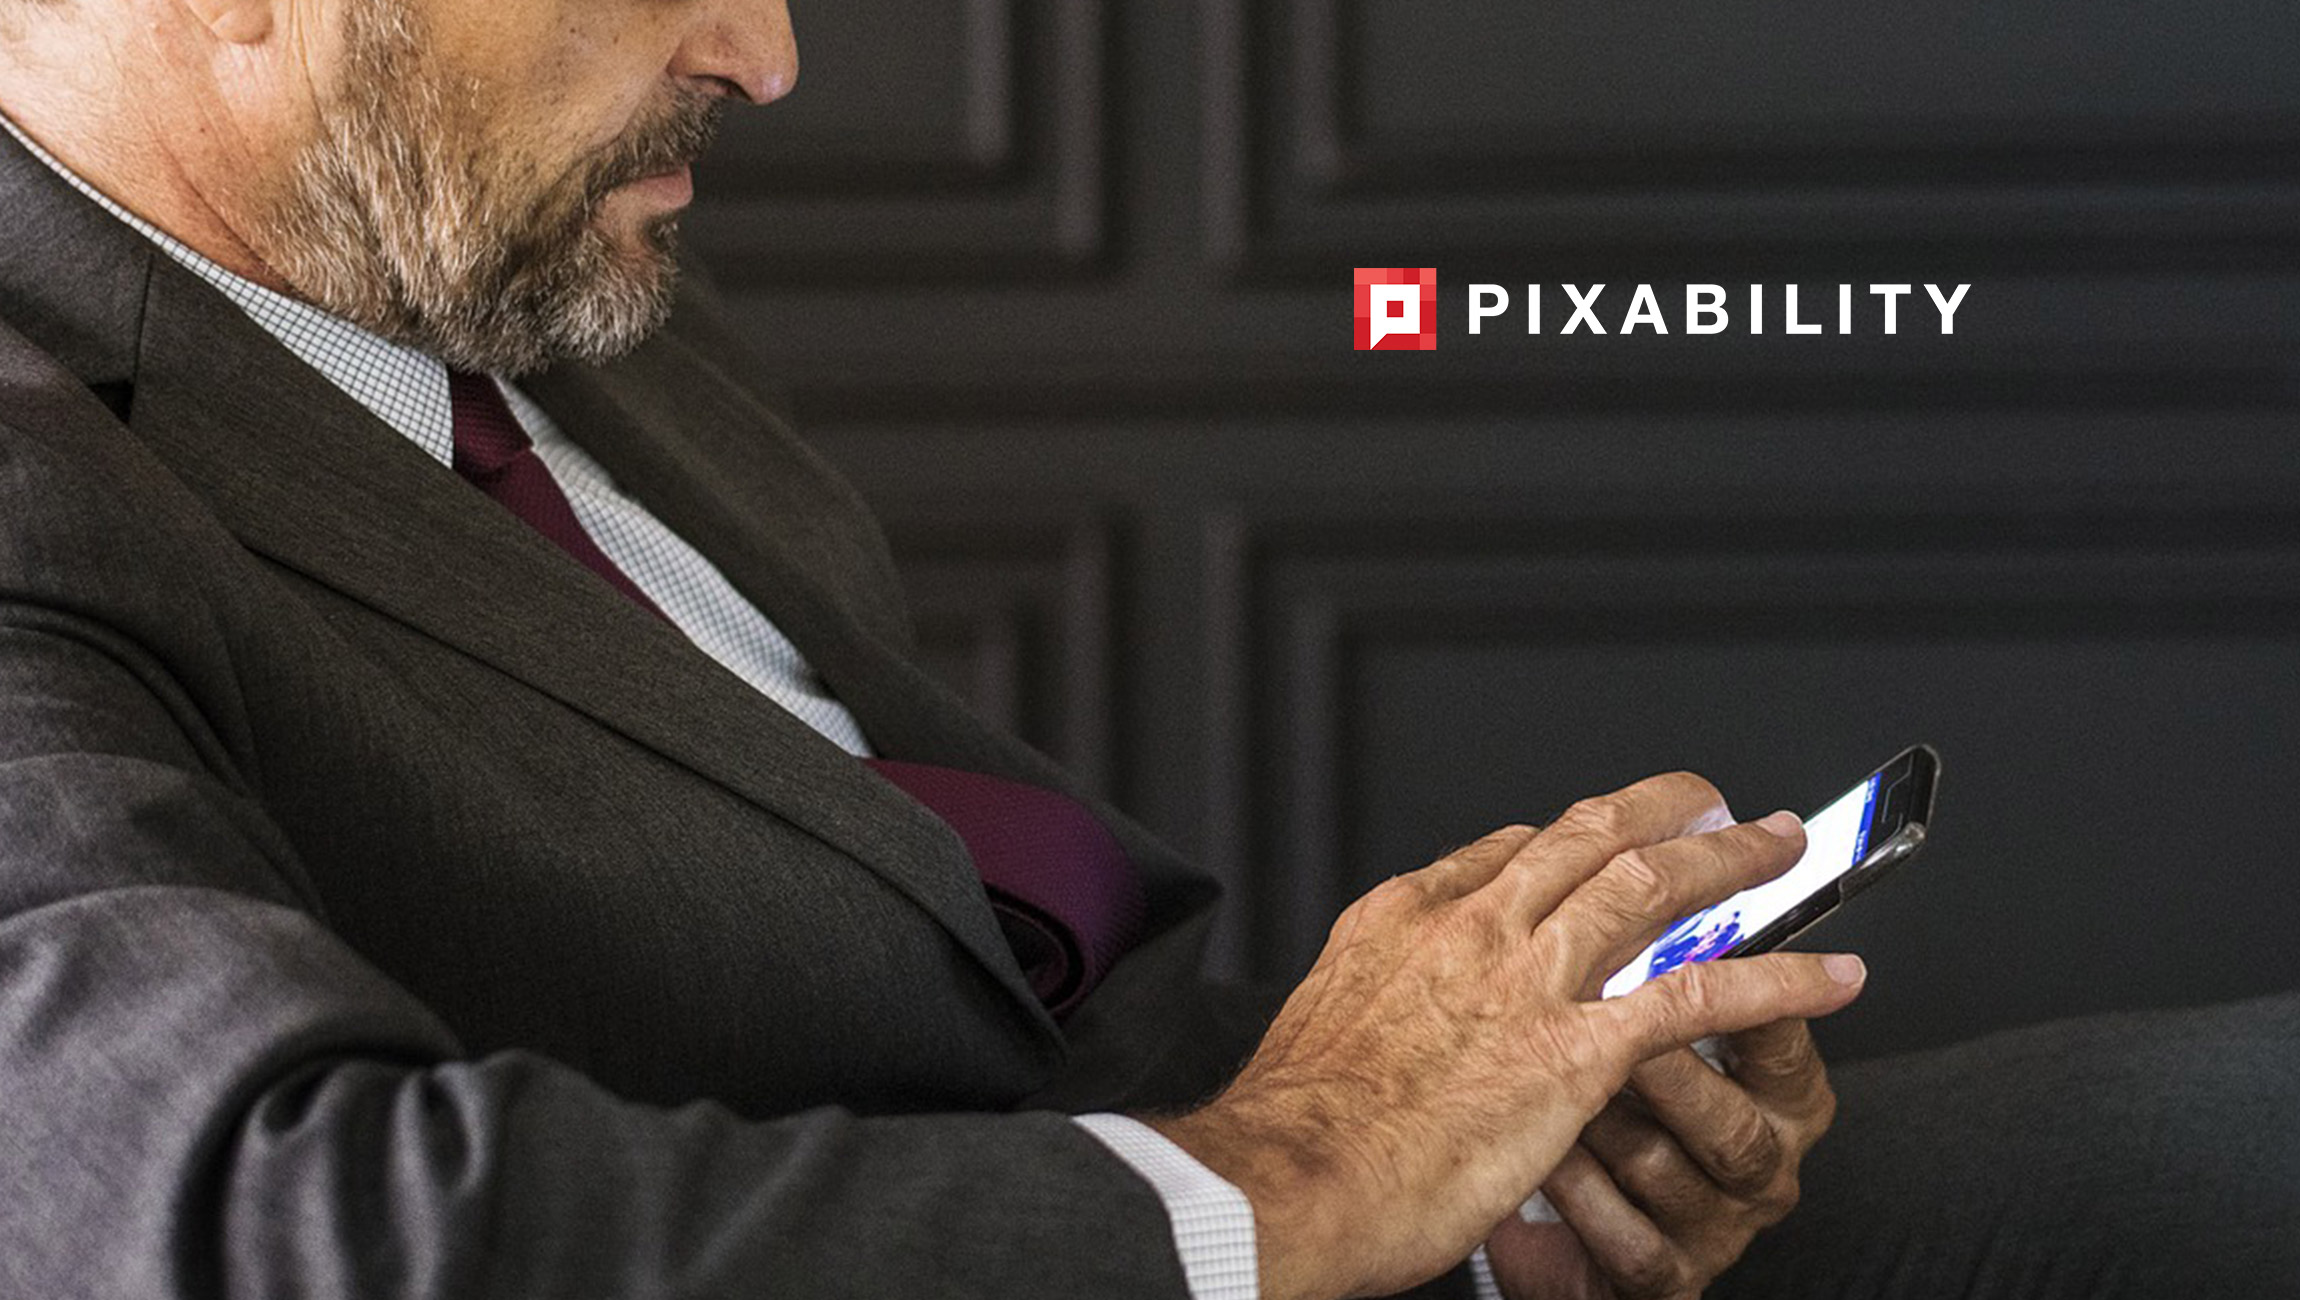 Pixability Hires Ex-Google Executive Chris Woods as Chief Revenue Officer